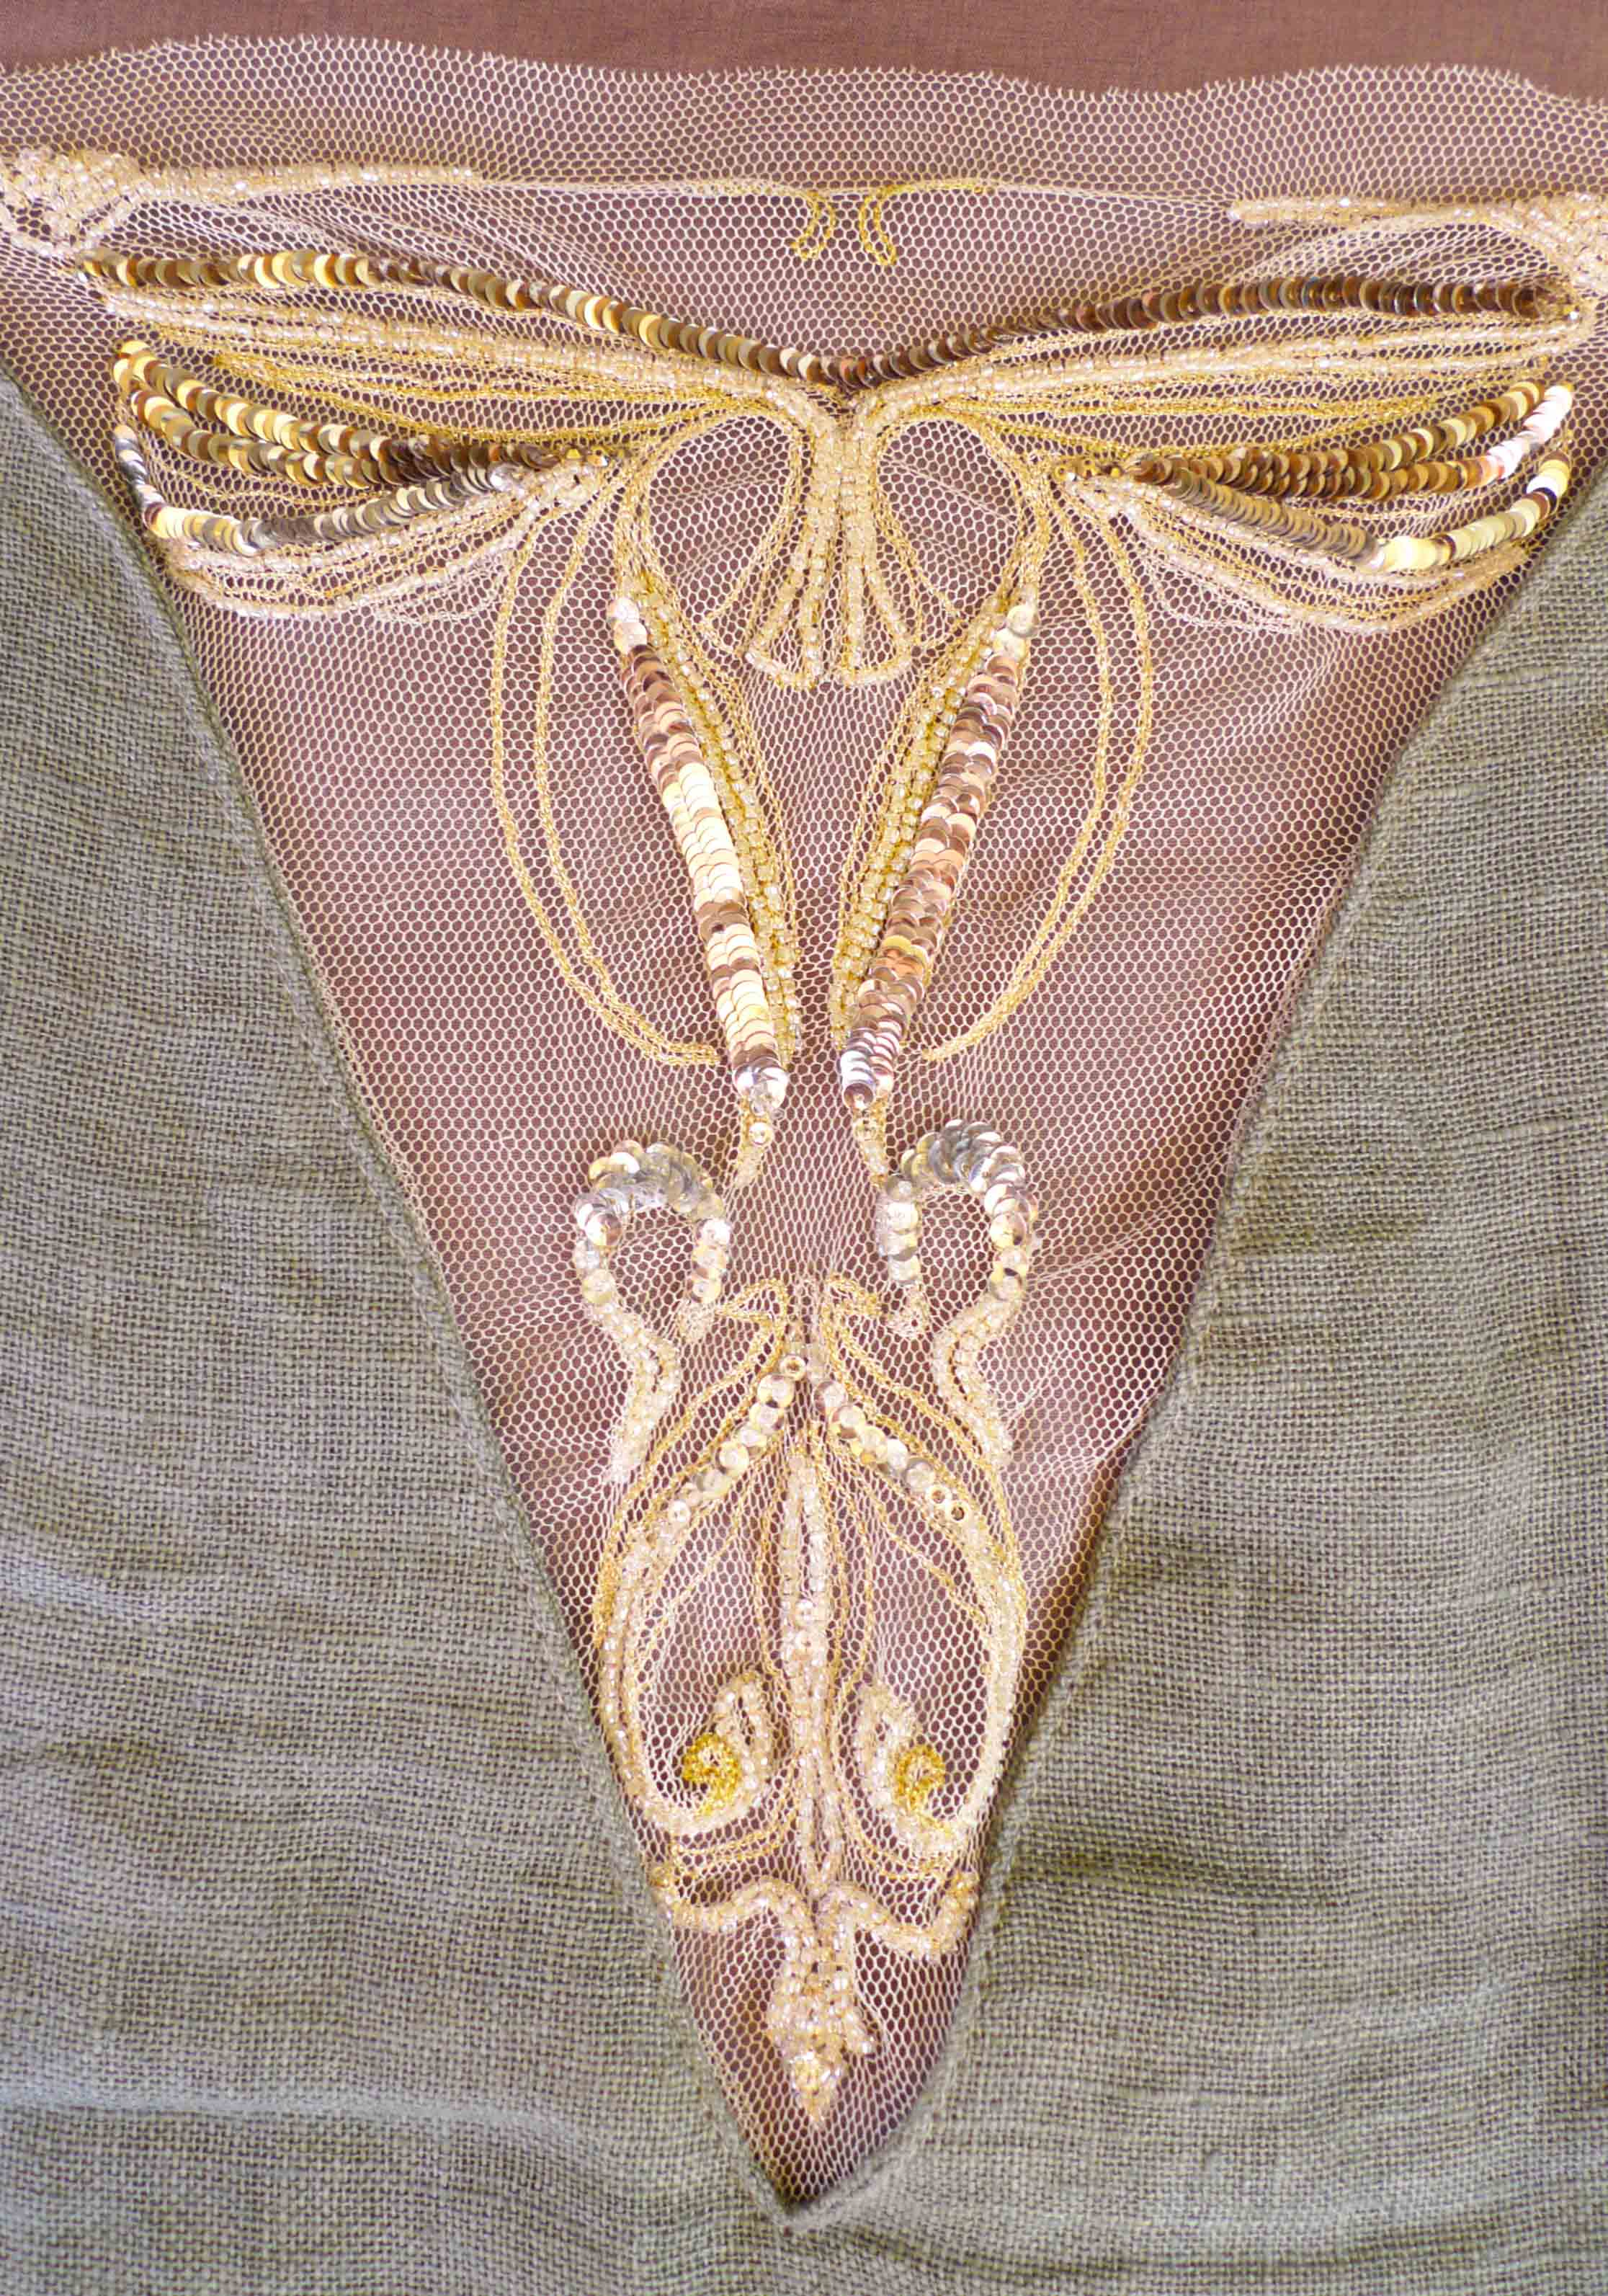 """Art nouveau"" embroidery"